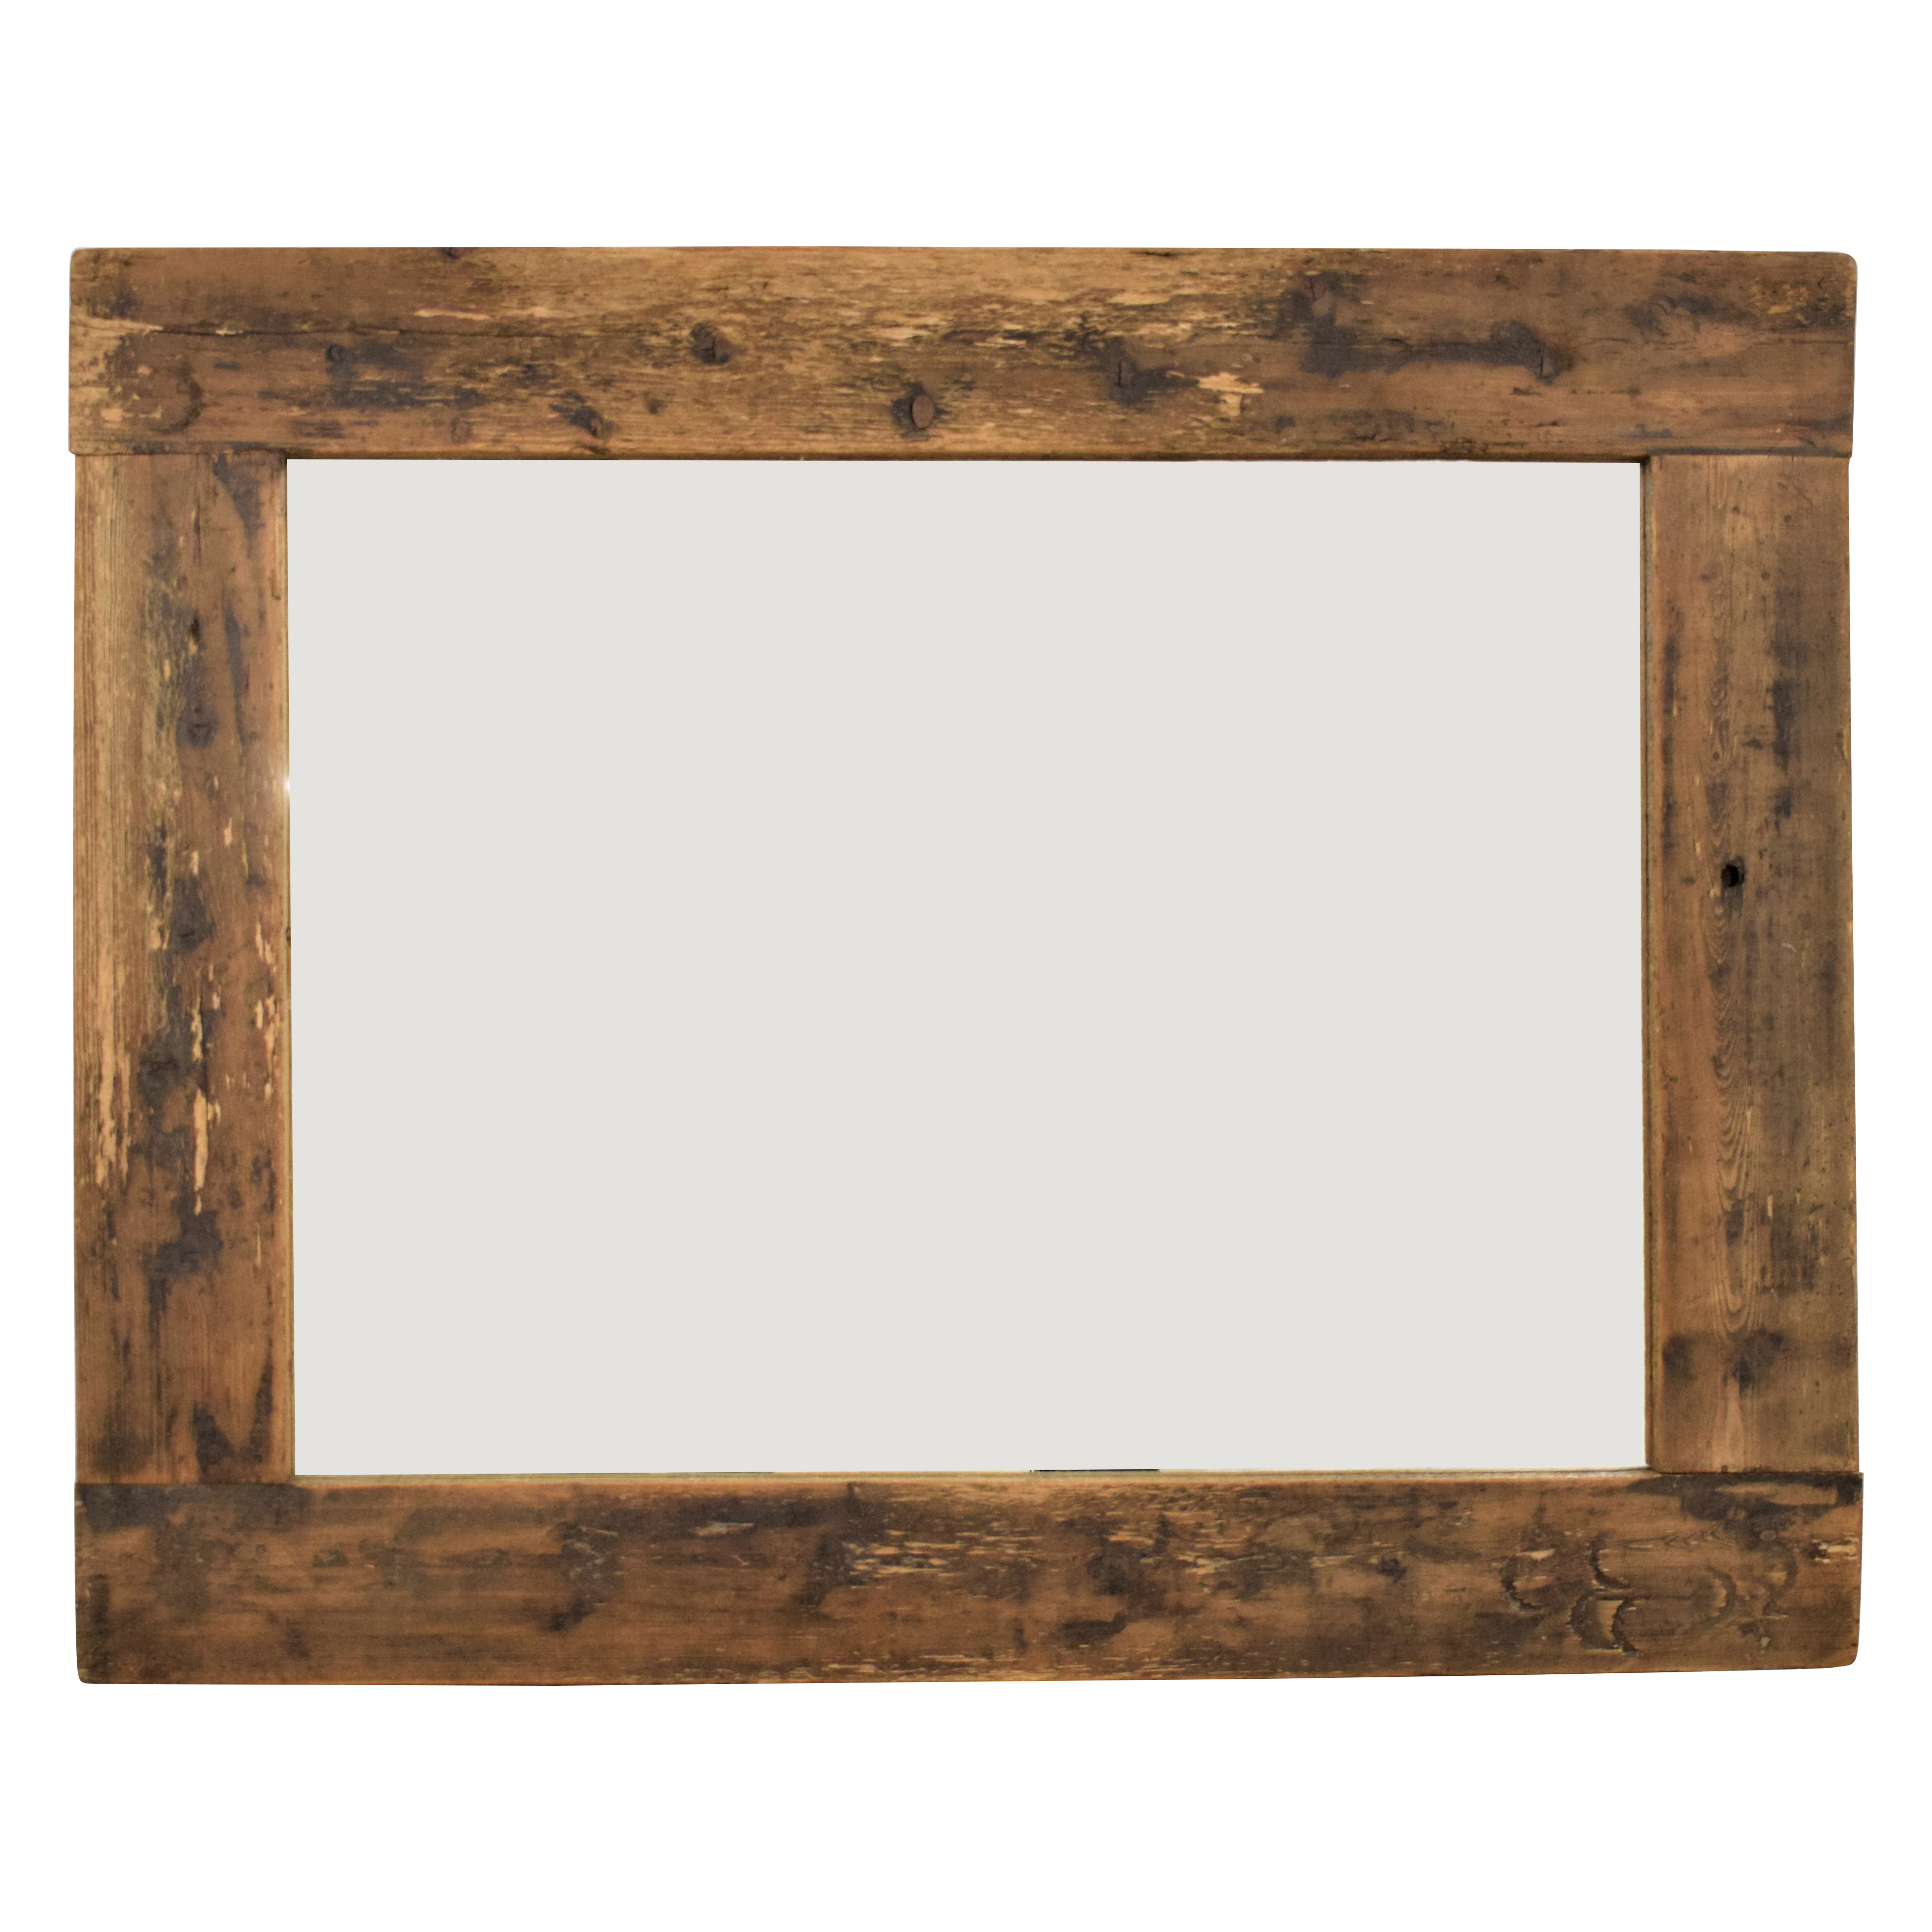 Rustic Style Framed Mirror dimensions